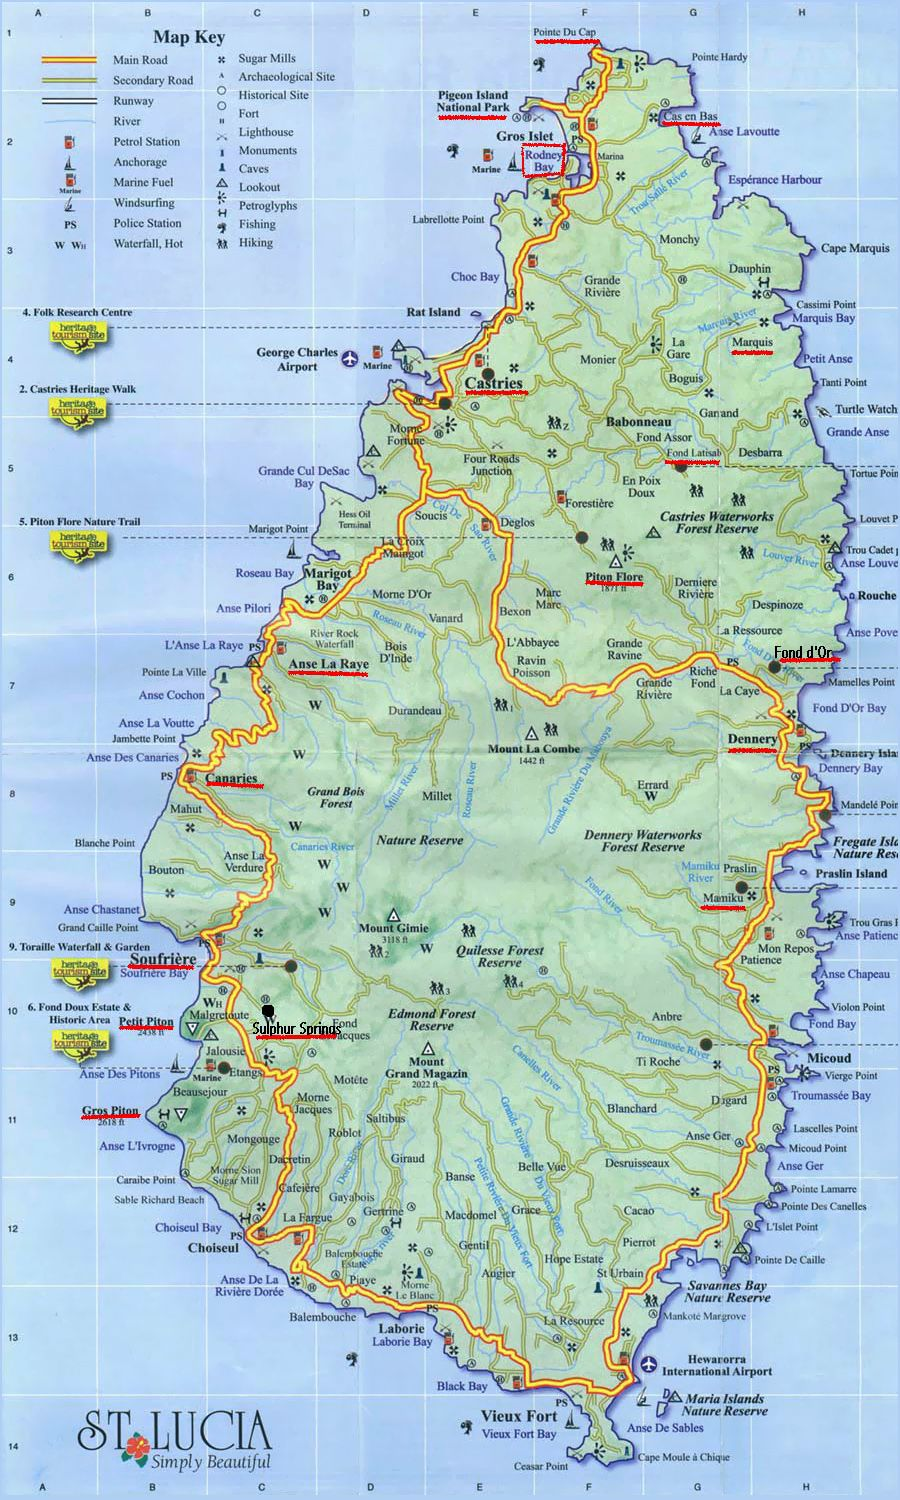 st lucia tourist attractions map Large Detailed Road Map Of Saint Lucia Saint Lucia Large Detailed st lucia tourist attractions map